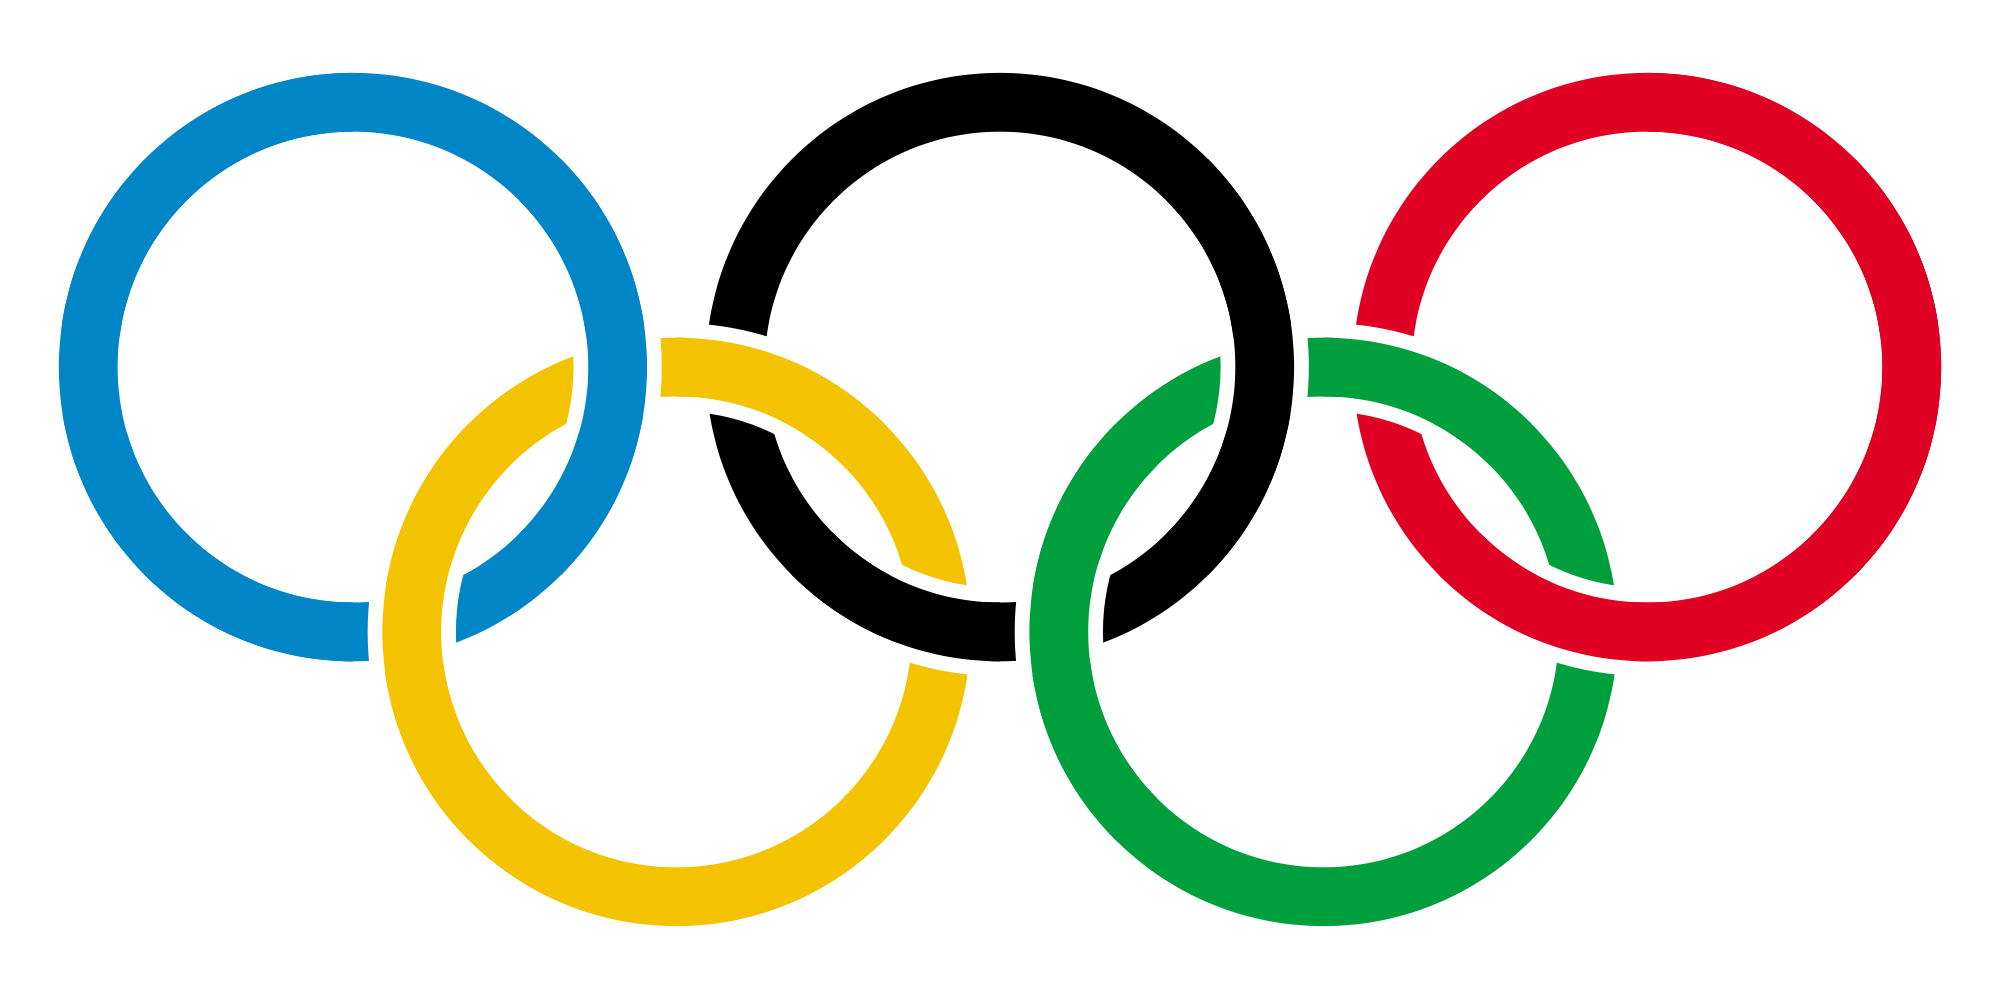 45 olympic logos and symbols from 1924 to 2022 colorlib 45 olympic logos and symbols from 1924 to 2022 biocorpaavc